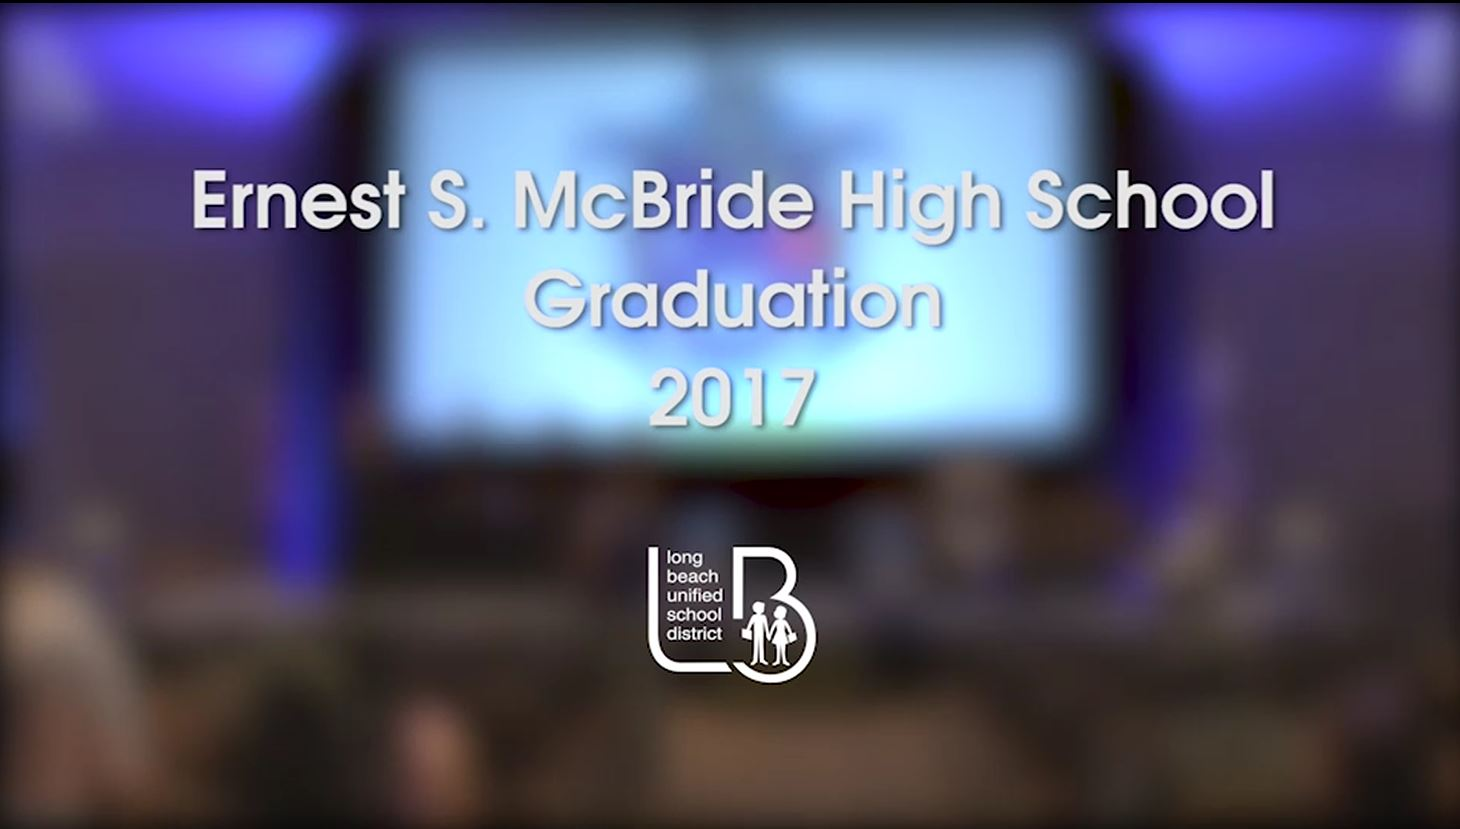 McBride High School Graduation 2017 - Video